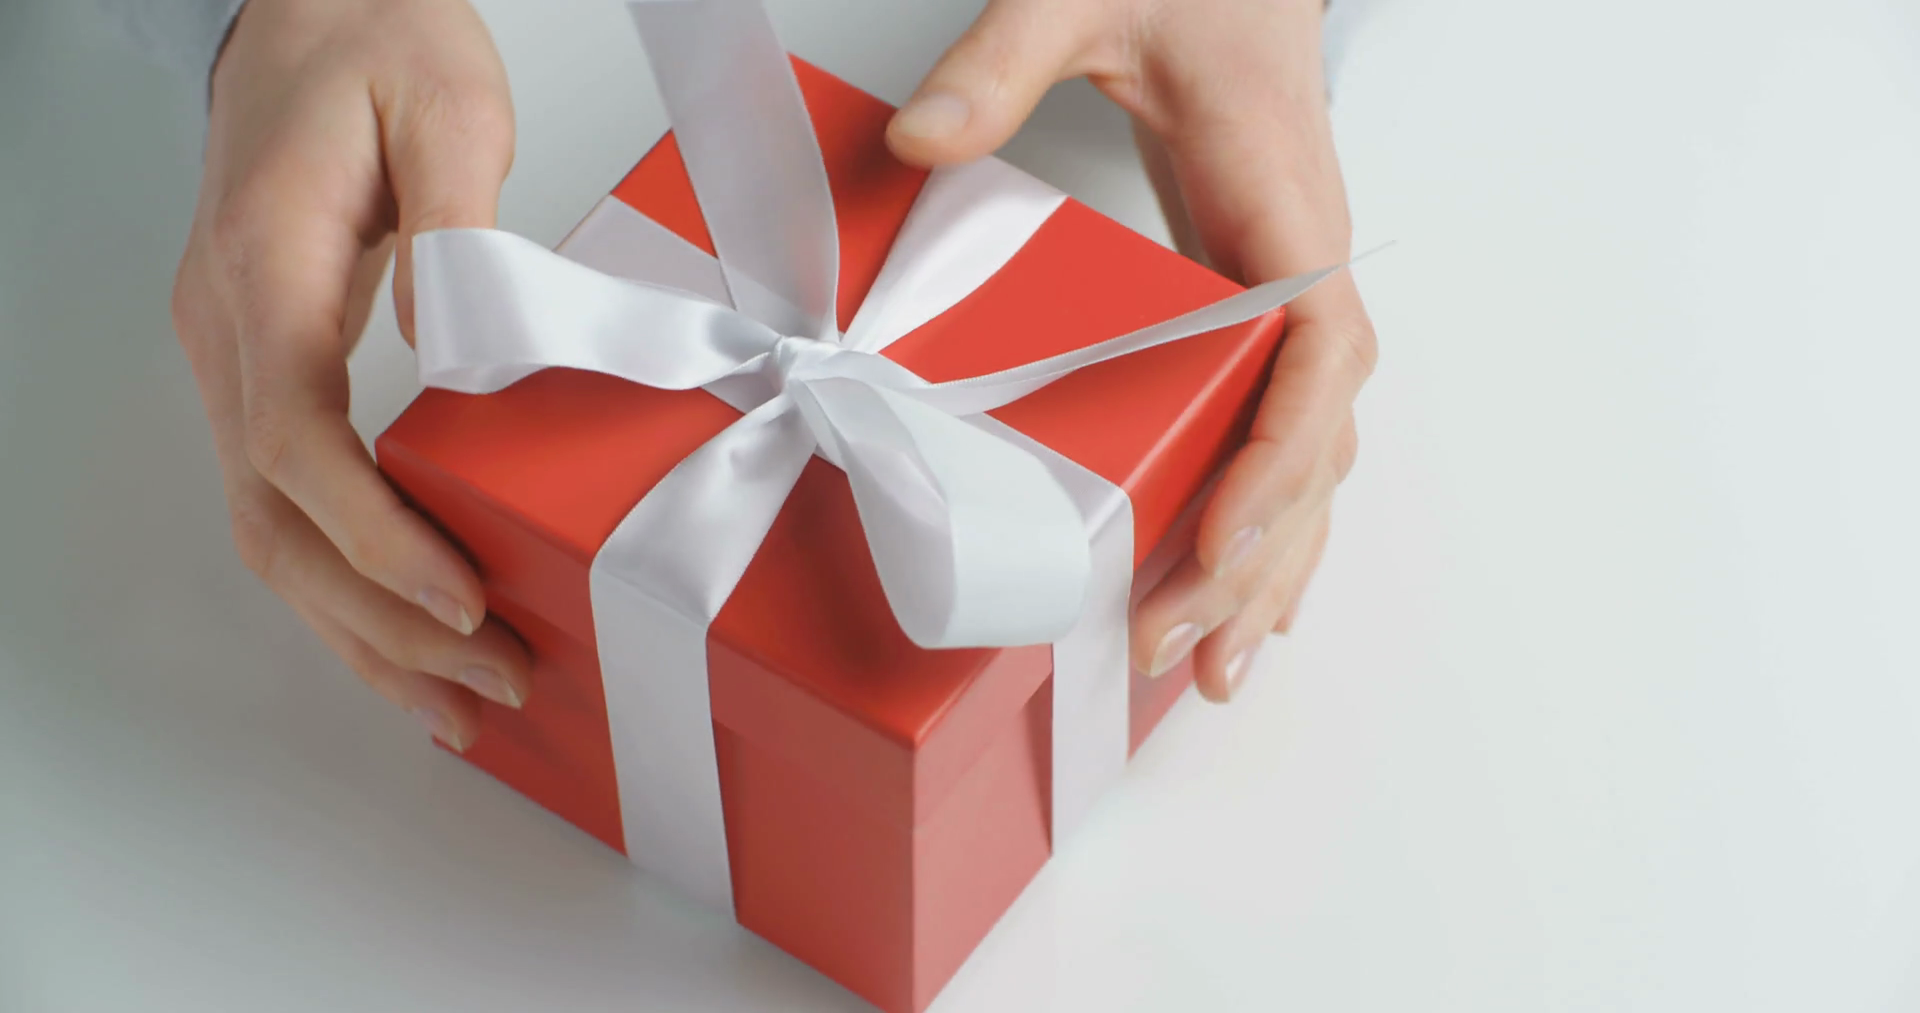 Female hands open a red gift box. Closeup shot. Stock Video Footage ...